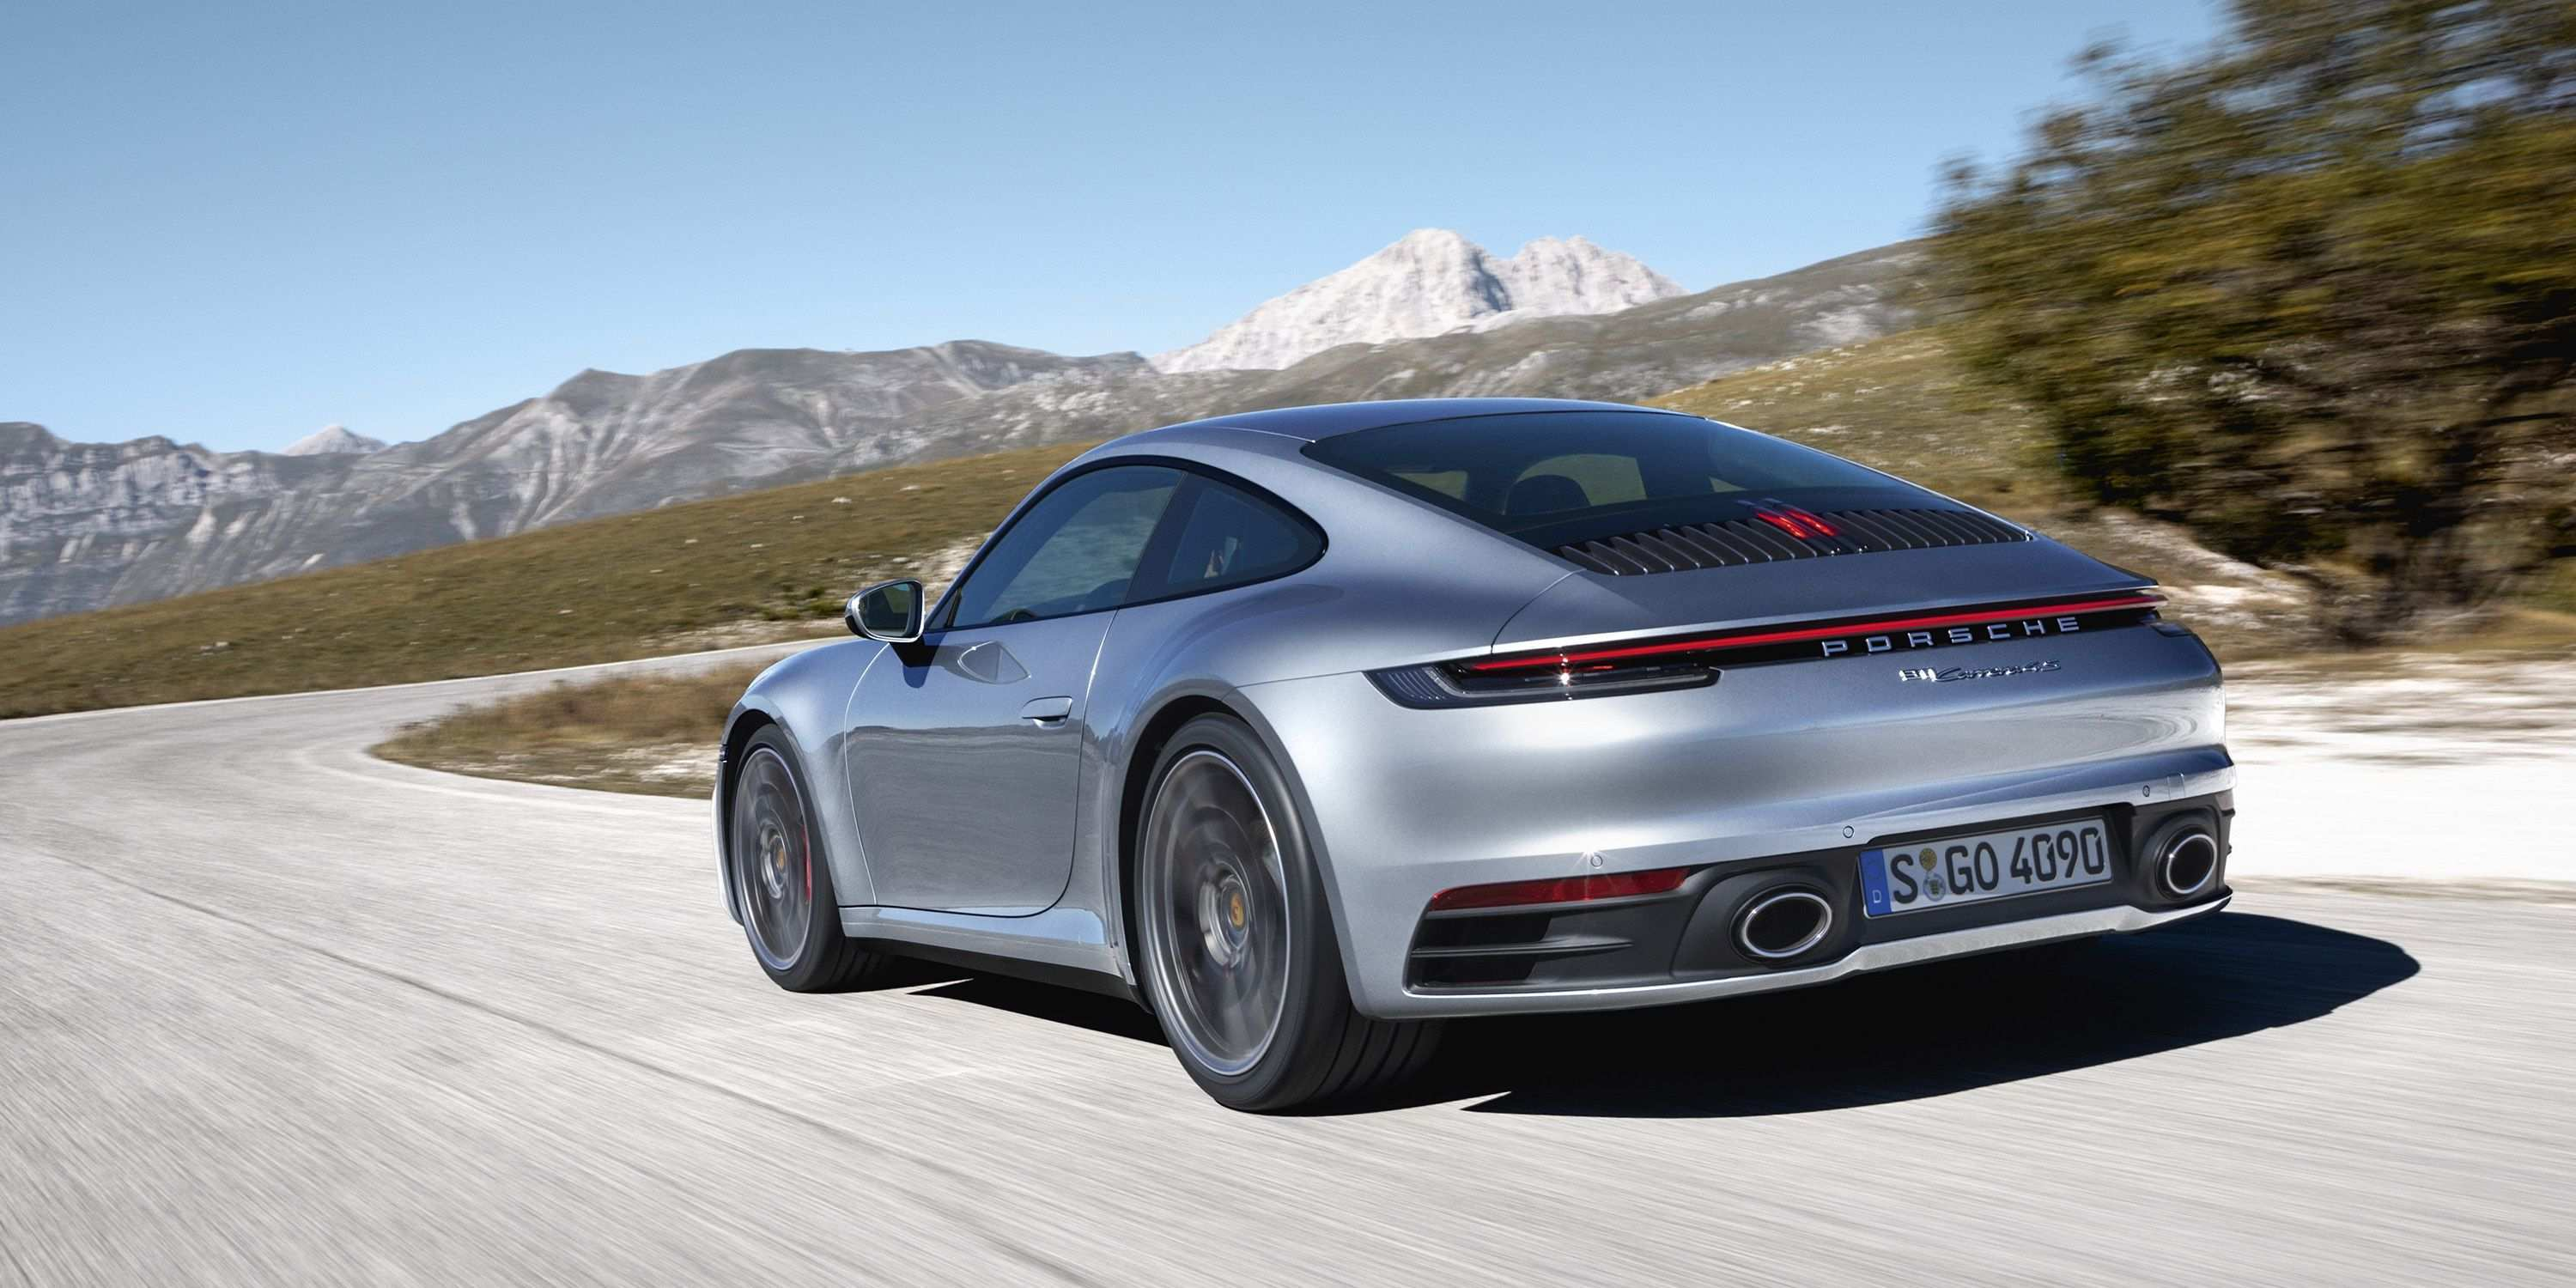 75 New 2020 Porsche 911 Carrera Concept by 2020 Porsche 911 Carrera